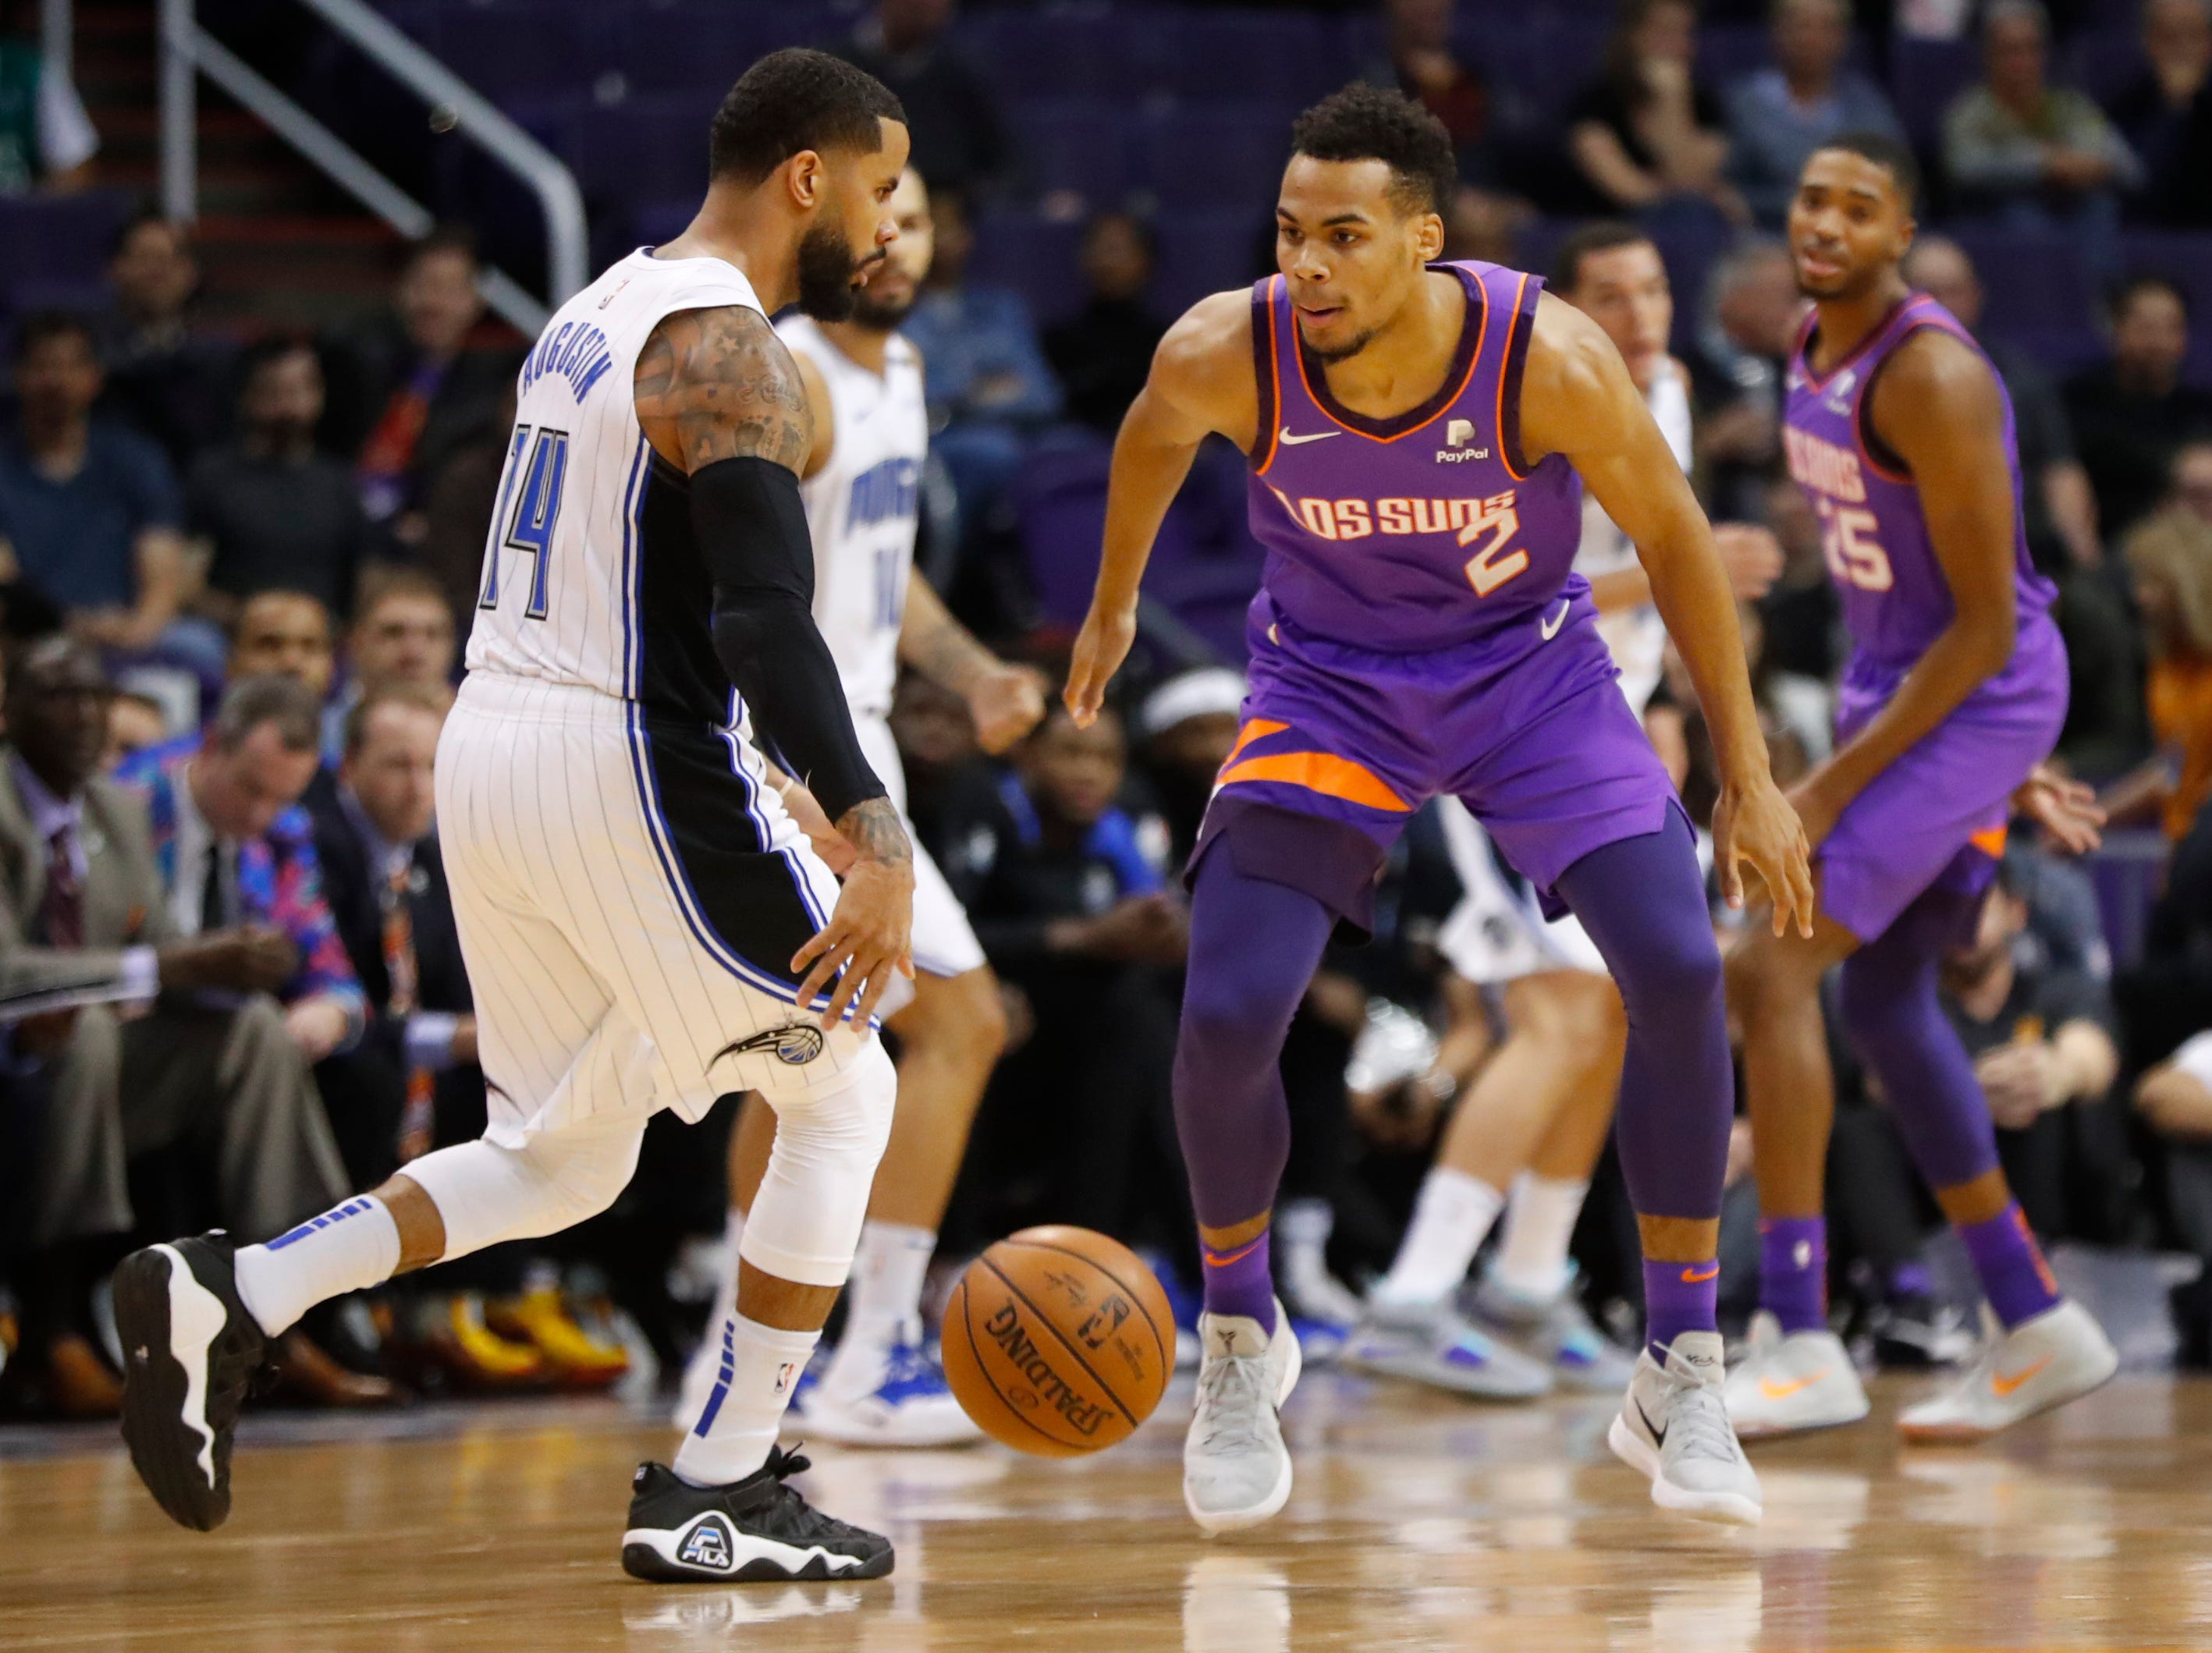 Suns' Elie Okobo (2) defends Magic's DJ Augustin (14) during the first half at Talking Stick Resort Arena in Phoenix, Ariz. on November 30, 2018.